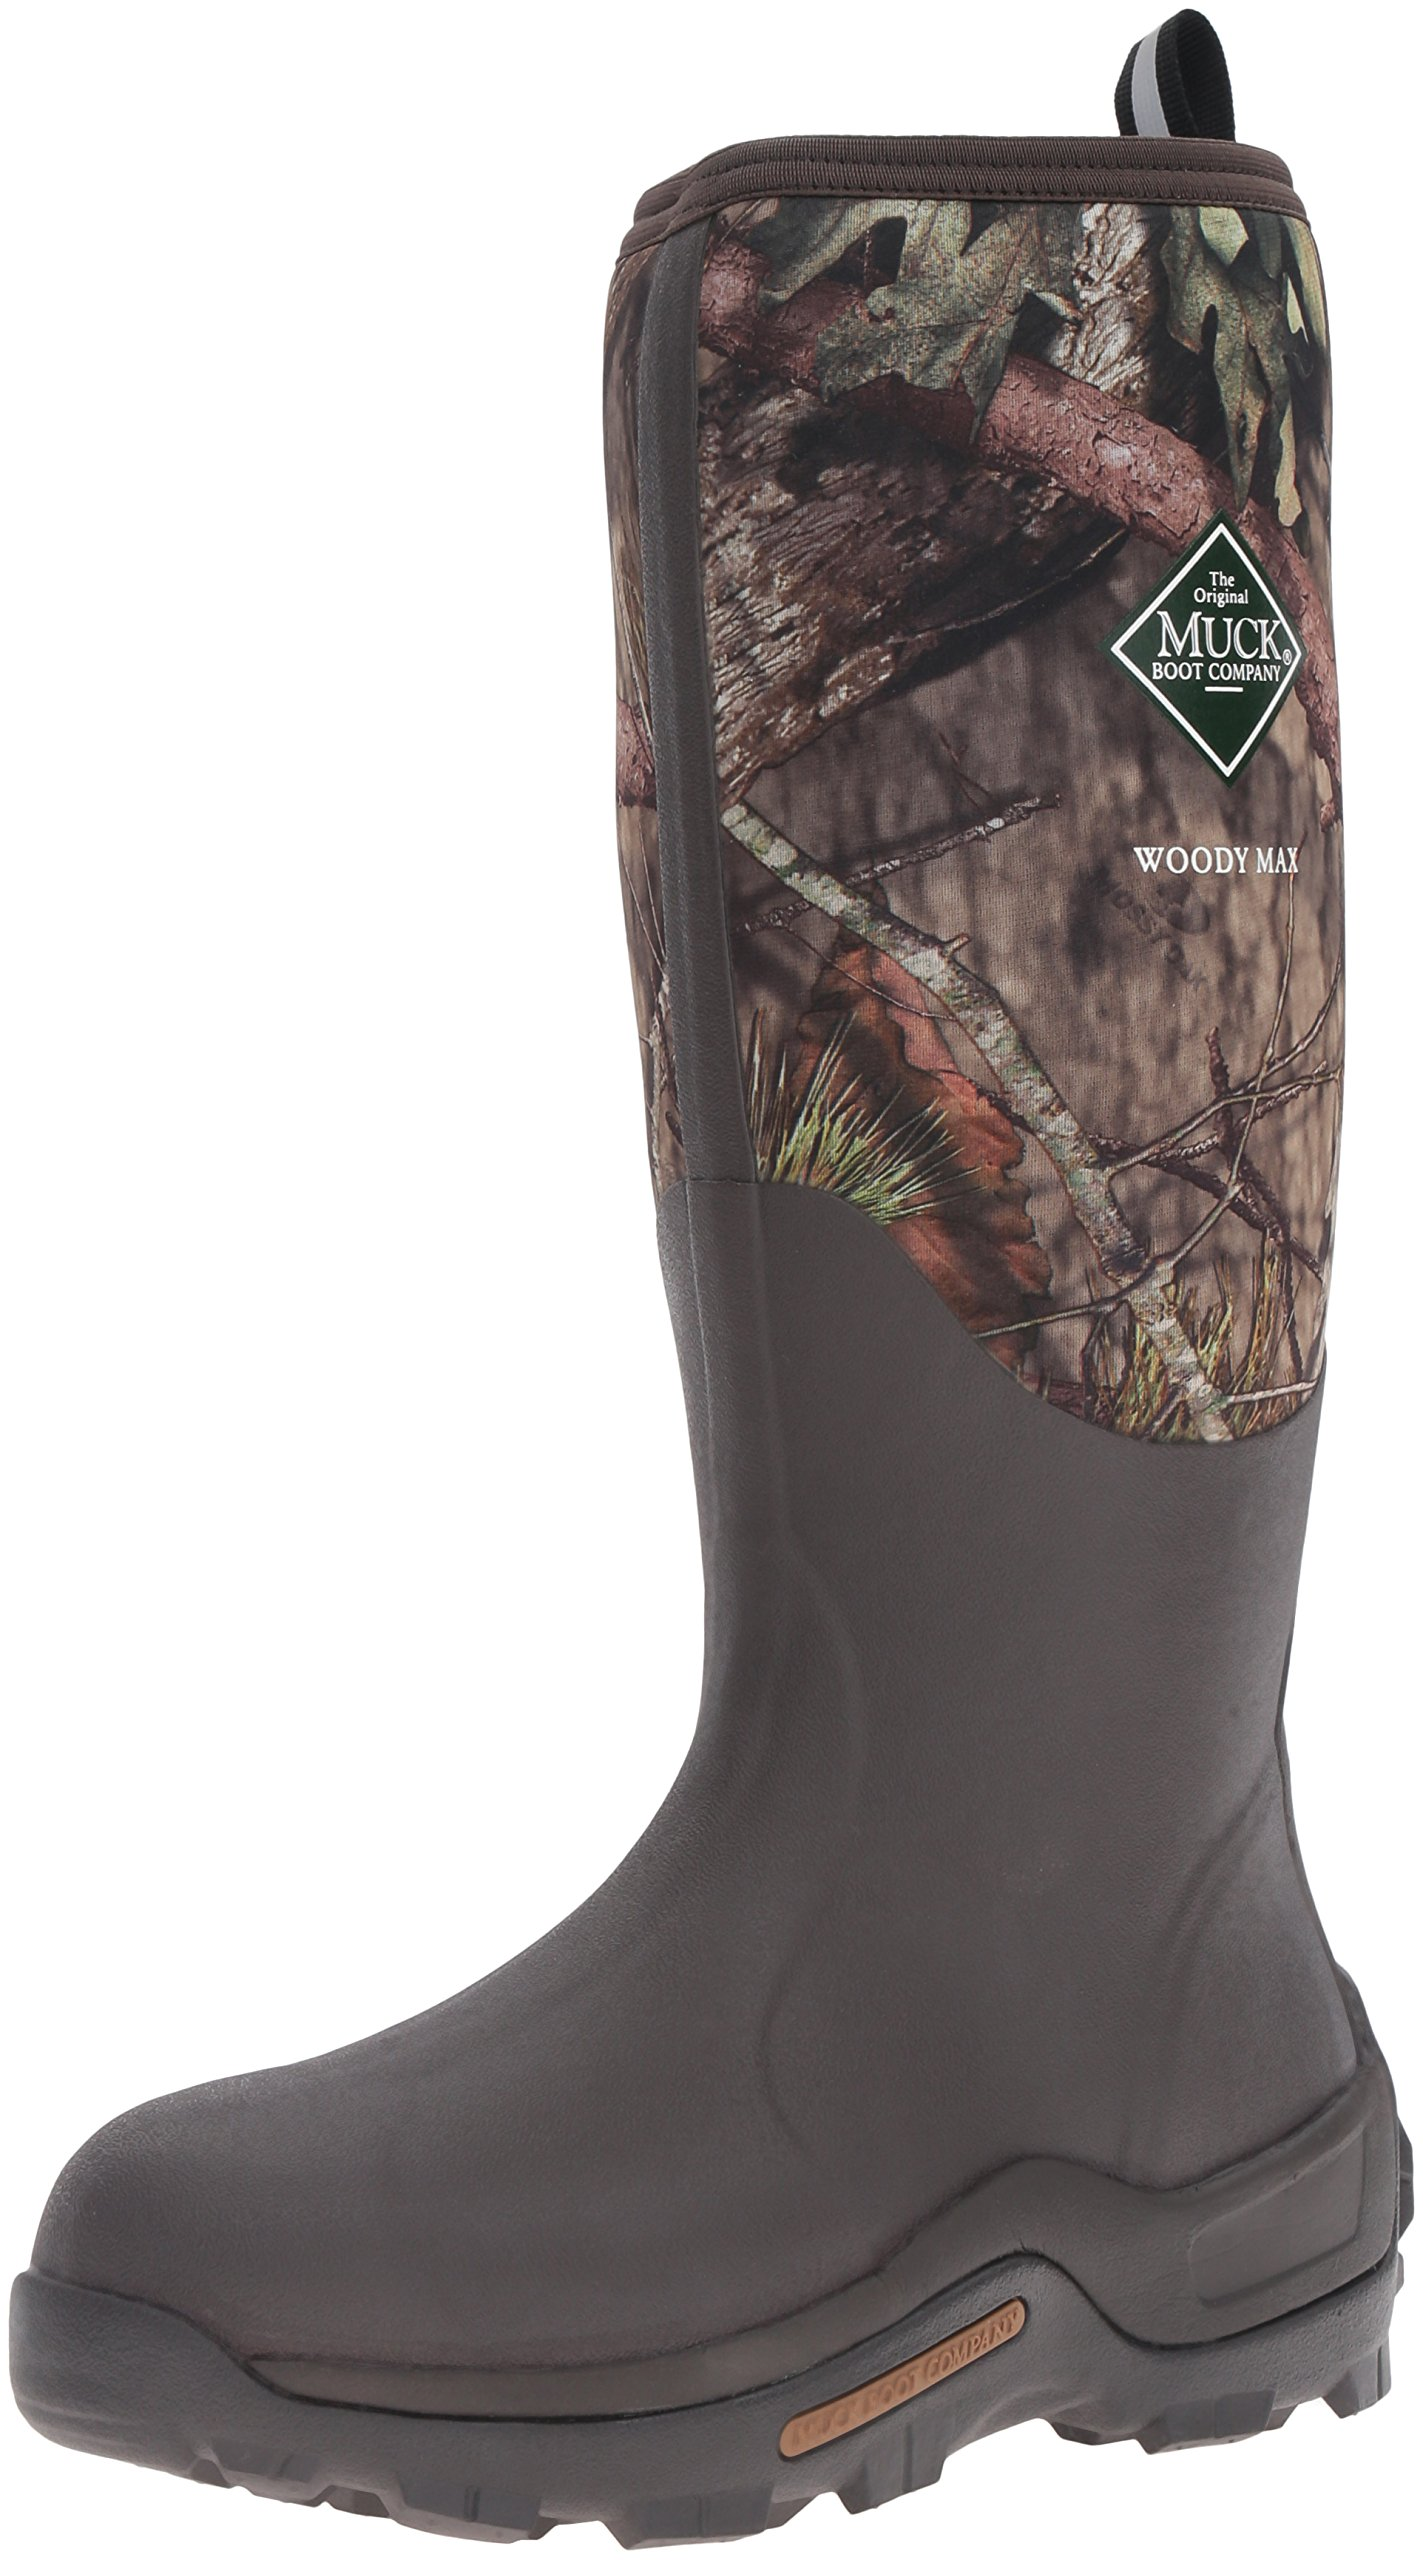 Muck Woody Rubber Insulated Hunting